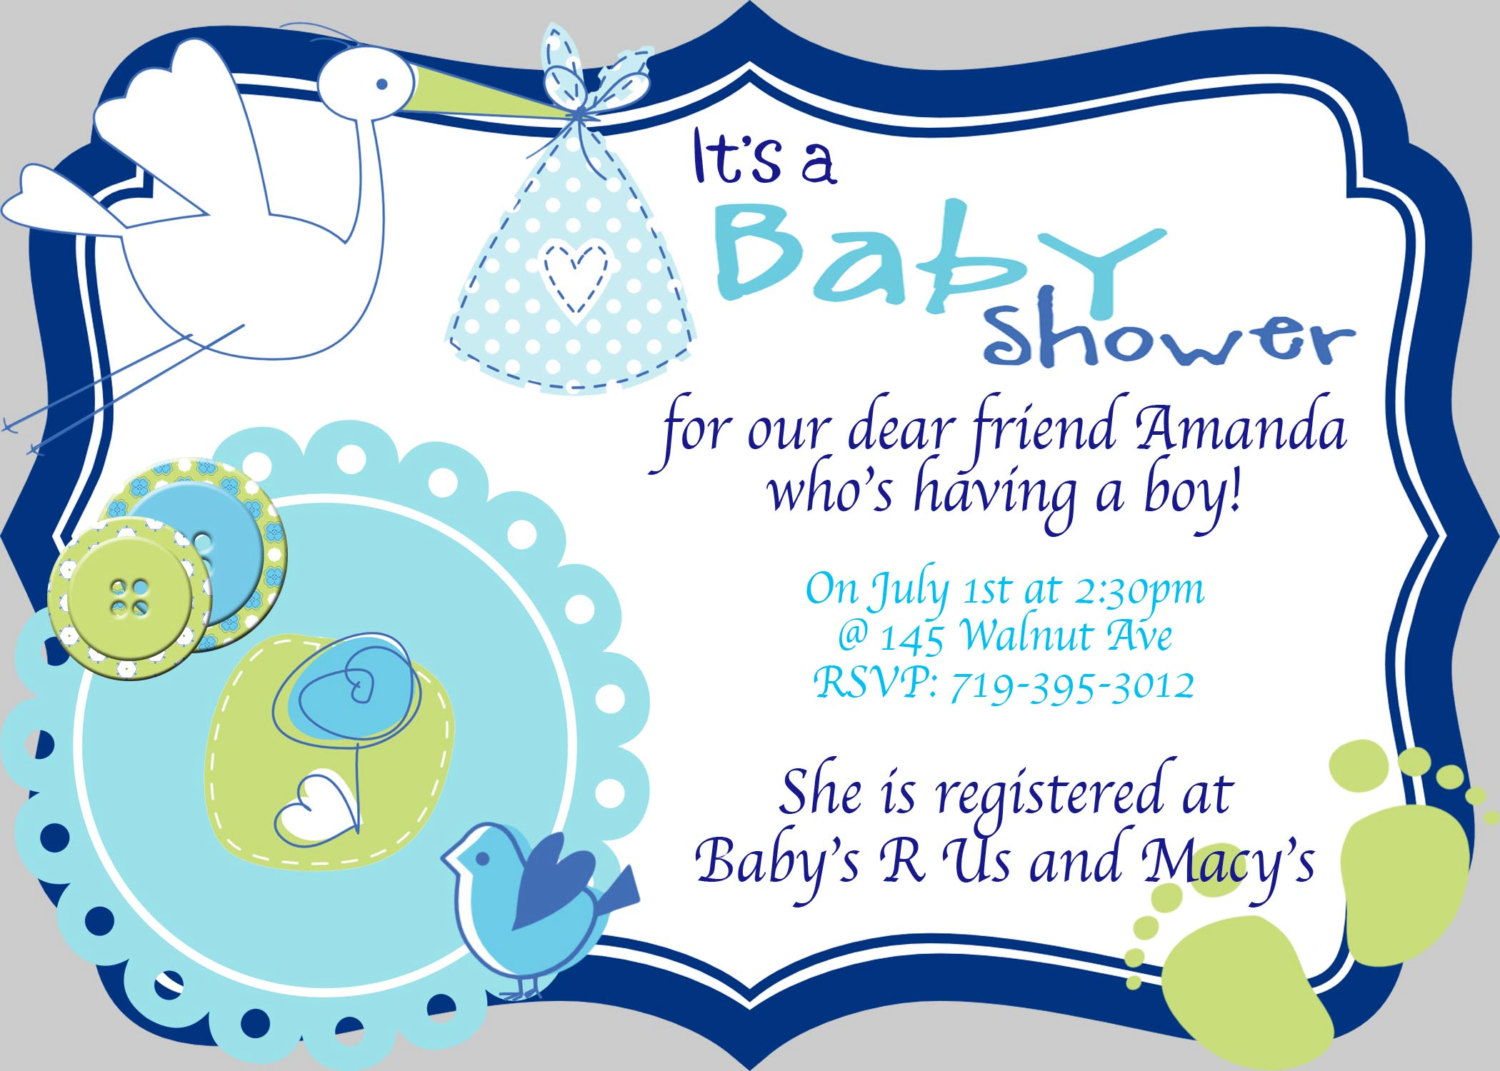 10 Trendy Baby Boy Shower Invitation Ideas some ideas to make great baby shower boy free printable family shower 2020